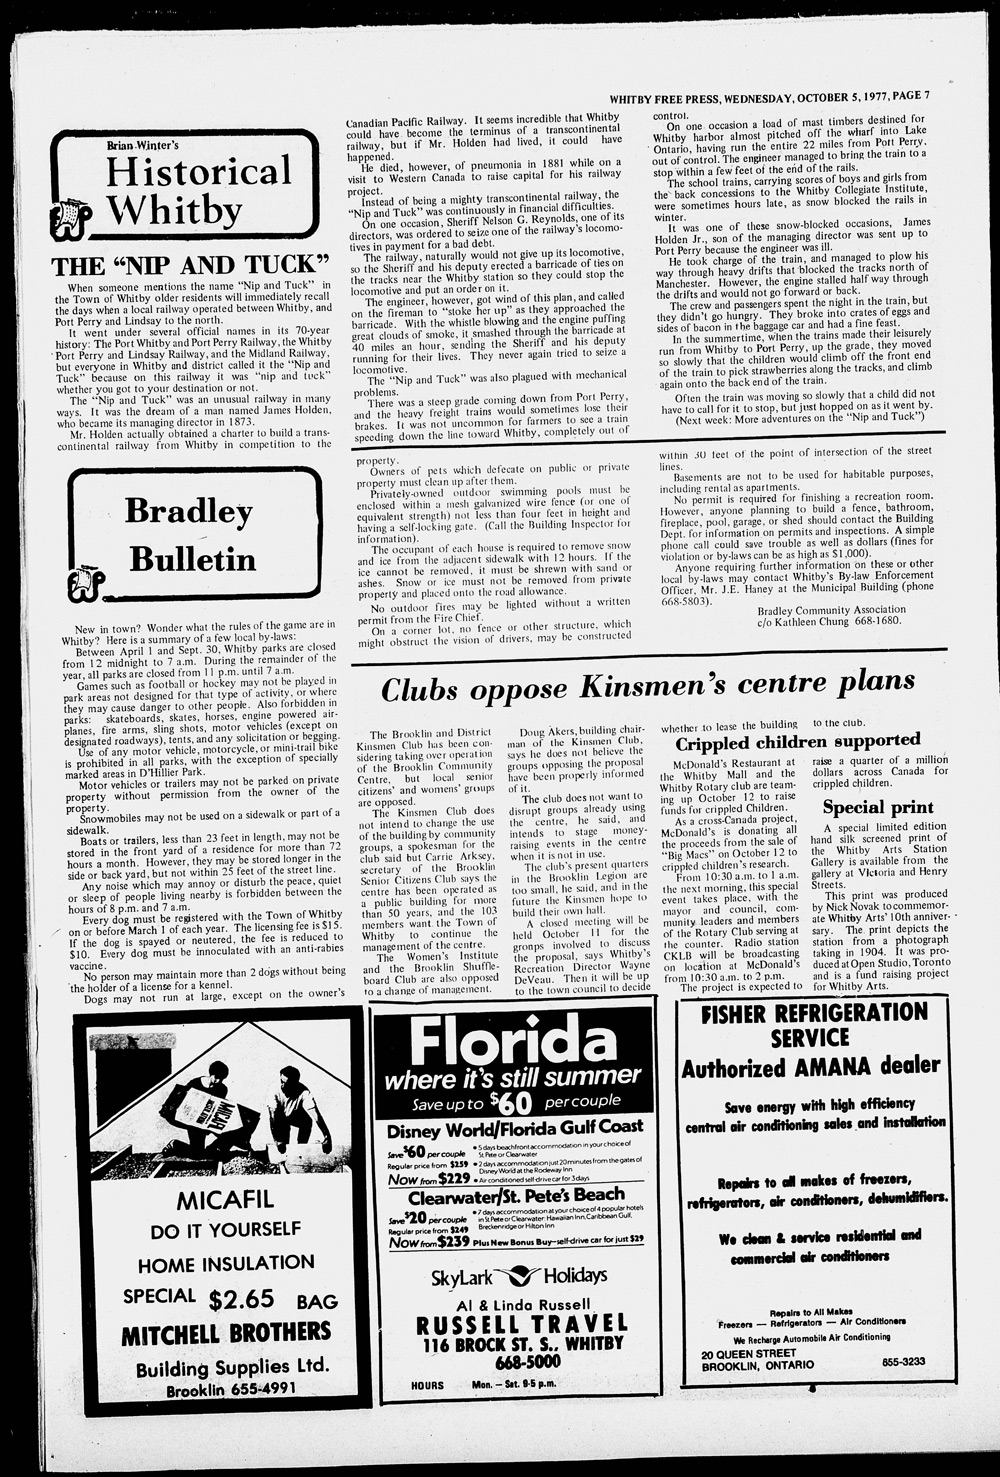 Whitby Free Press, 5 Oct 1977